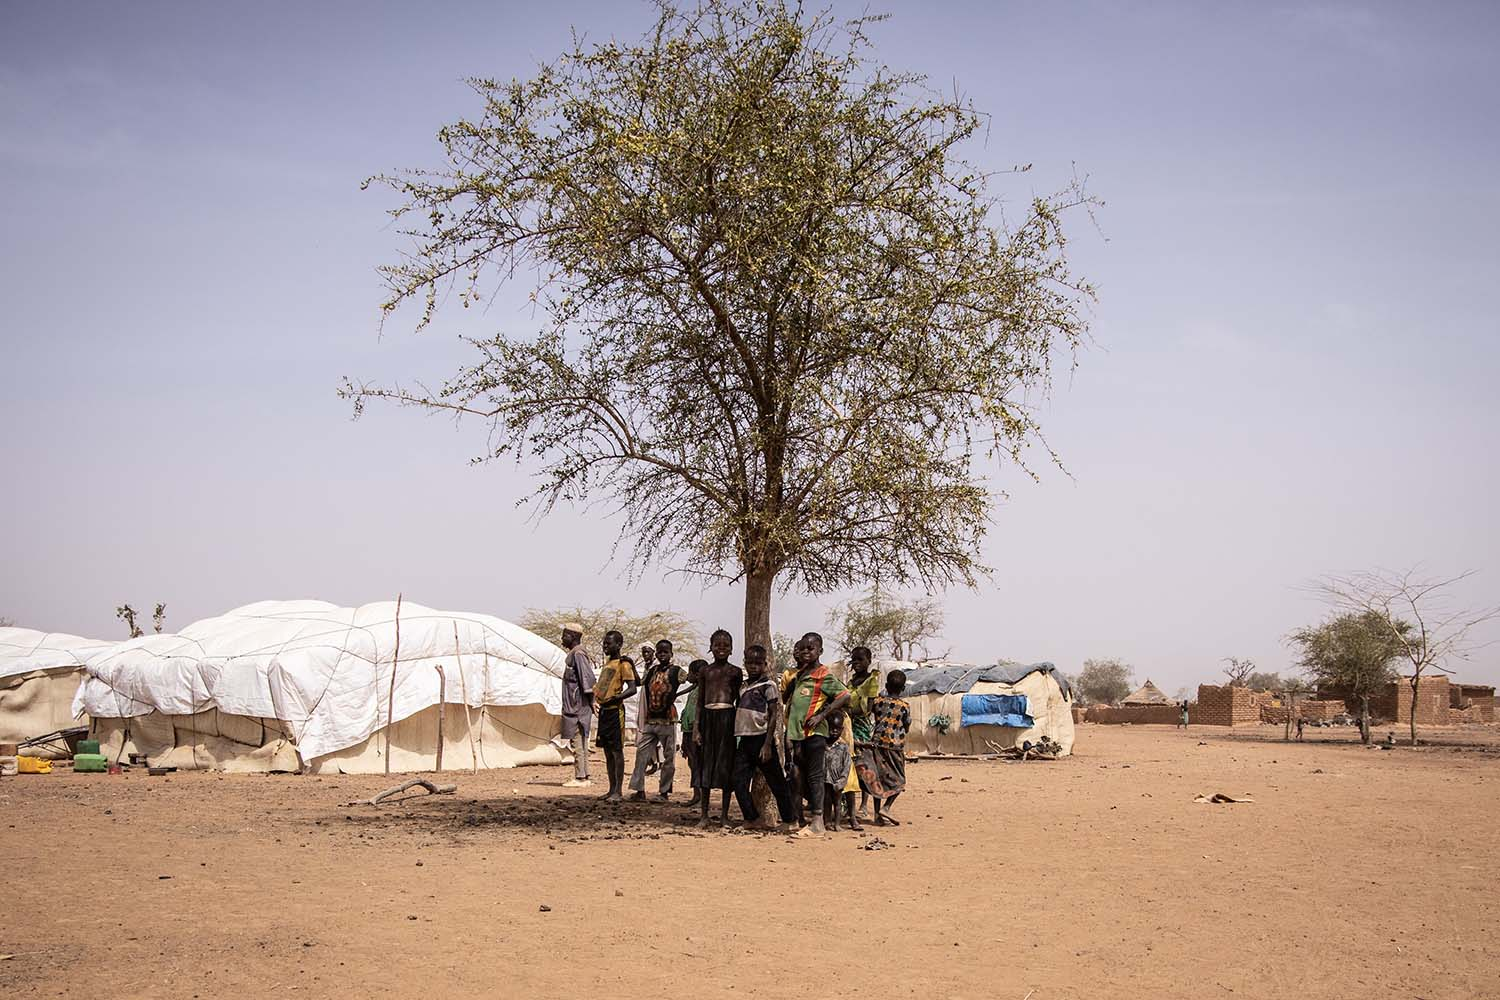 Children stand in the shadow of a tree at a camp for internally displaced people in Barsalogho, Burkina Faso, on Jan. 27. The small town hosts 10,000 displaced persons and refugees fleeing jihadist and inter-community violence in the country and neighboring Mali and Niger. OLYMPIA DE MAISMONT/AFP via Getty Images